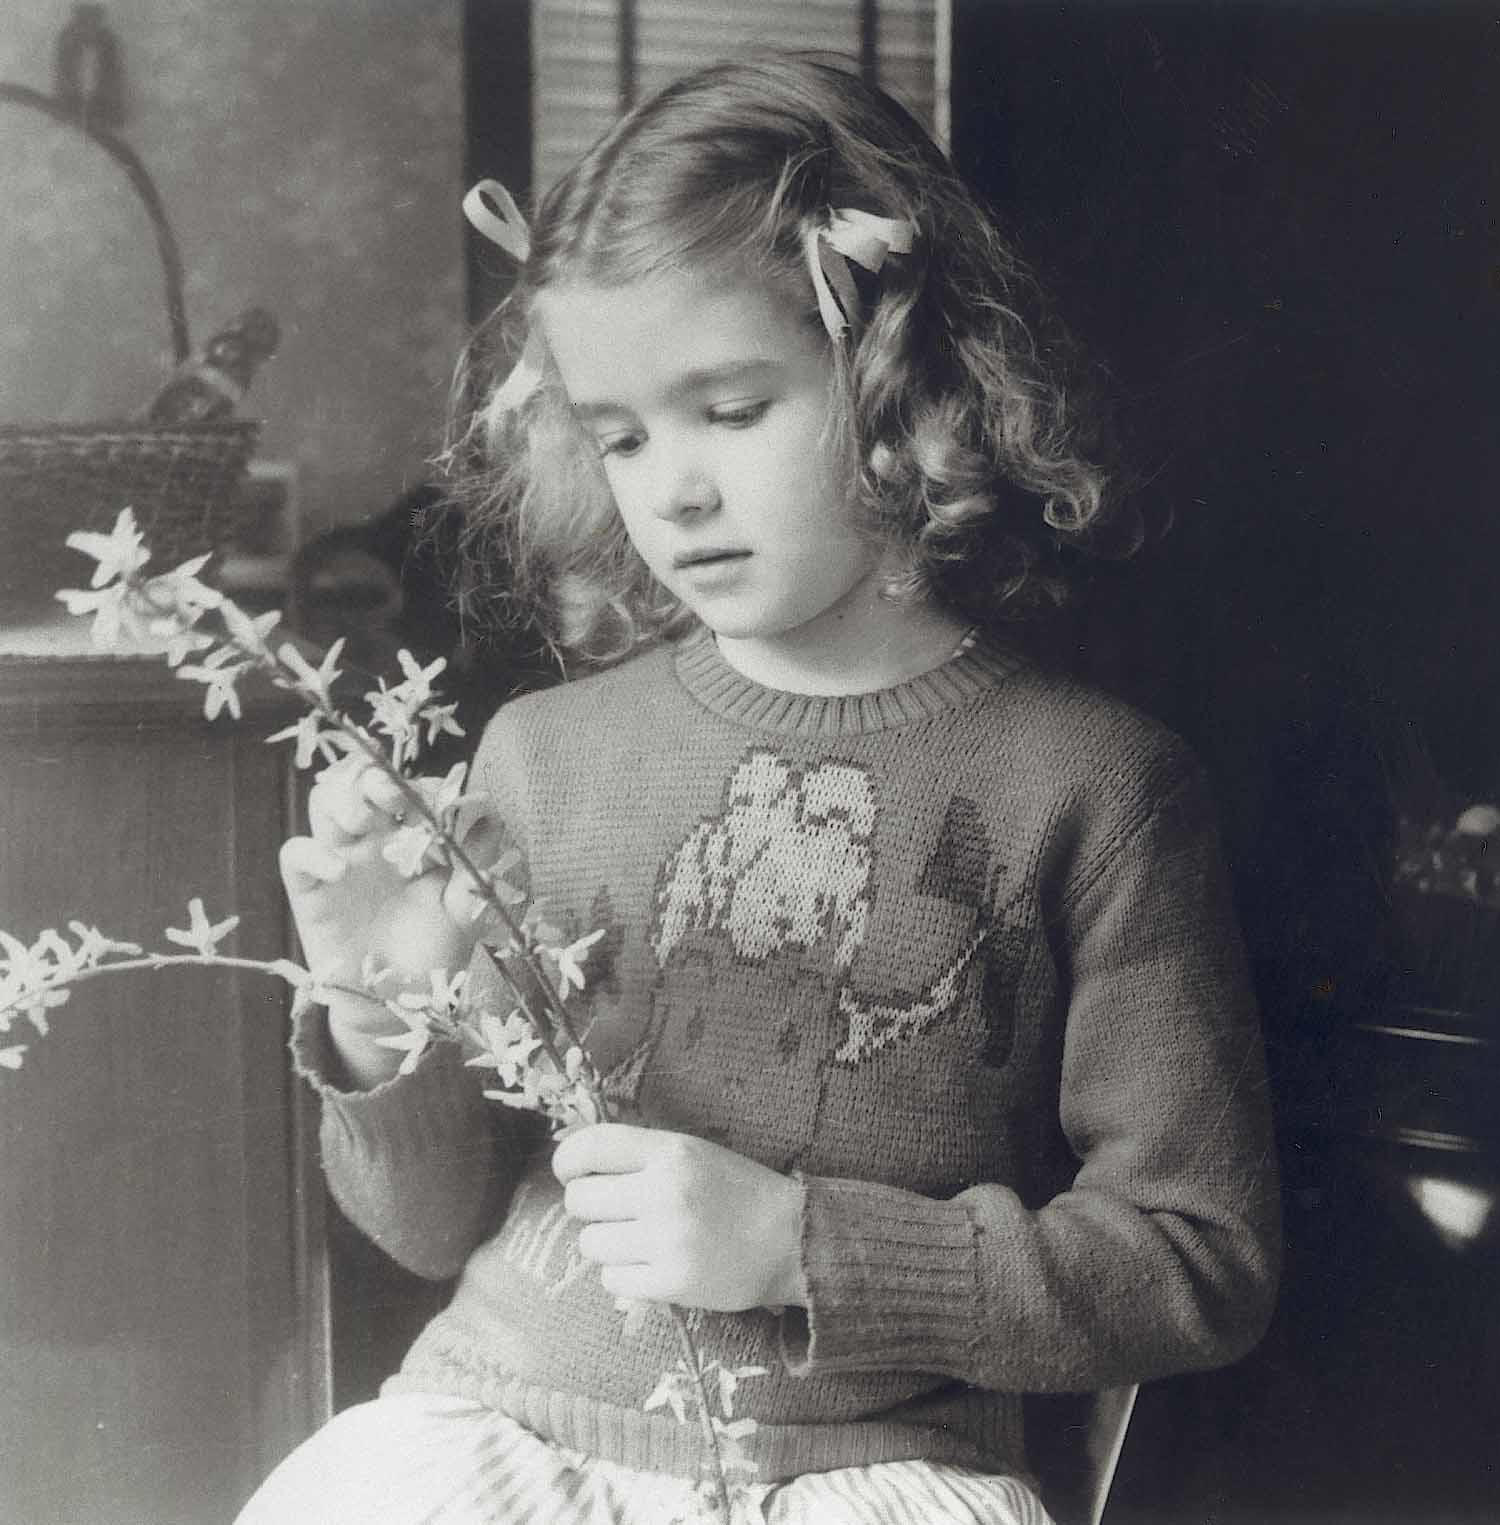 A young Martha arranging handpicked flowers for her mom